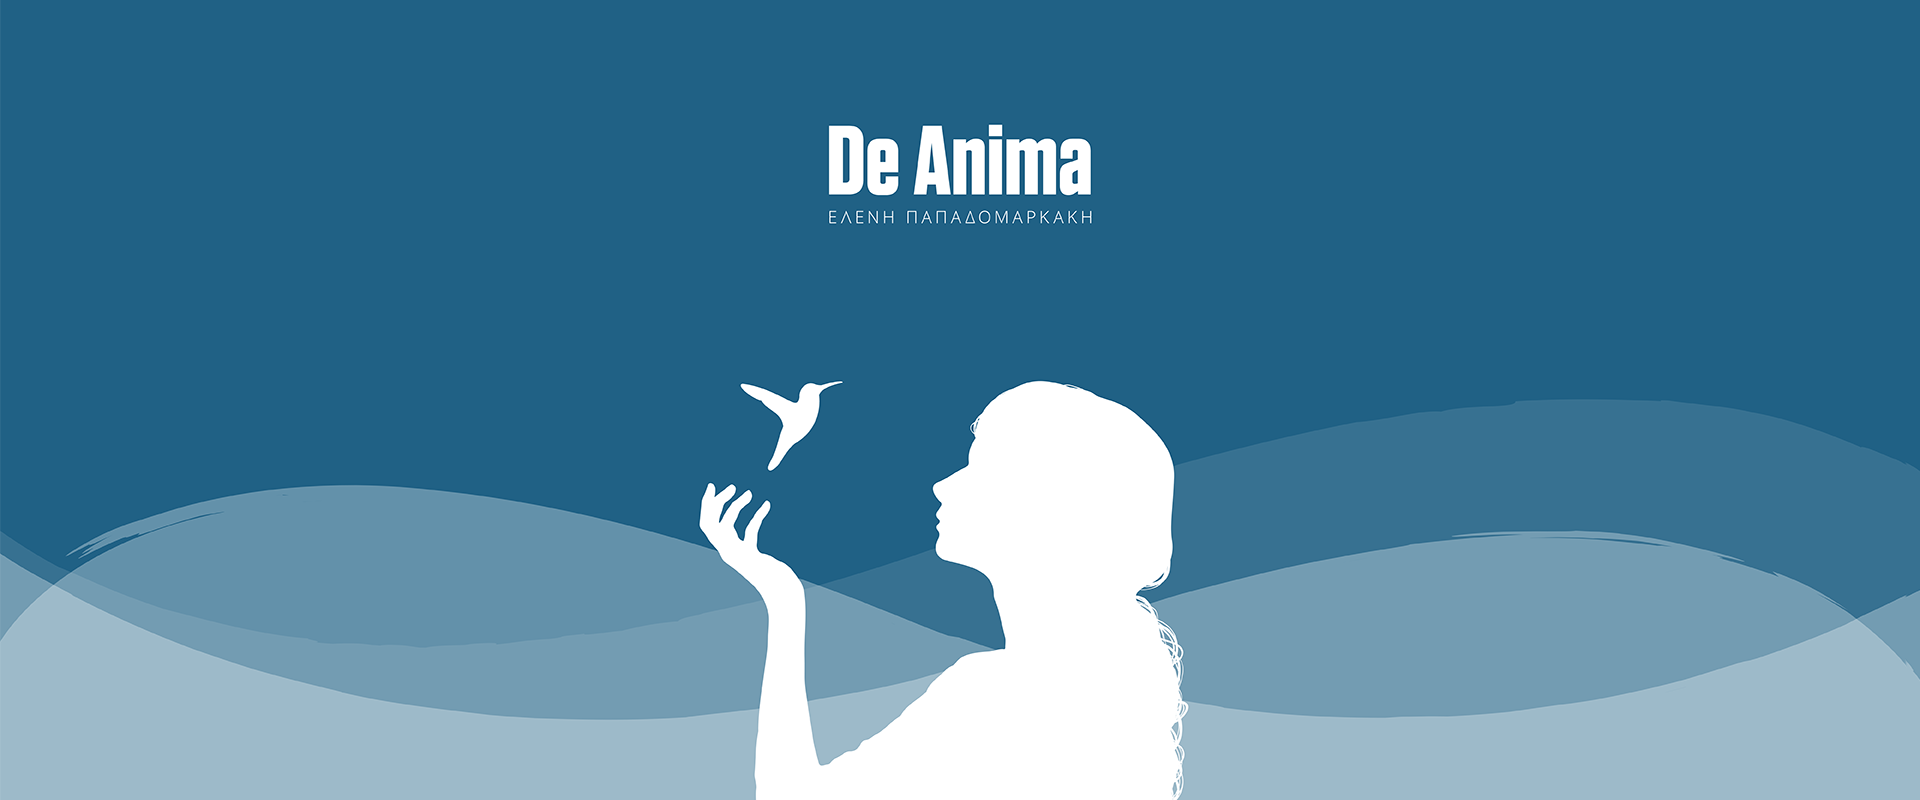 De Anima - Page Top Background Image - Girl & Humming Bird